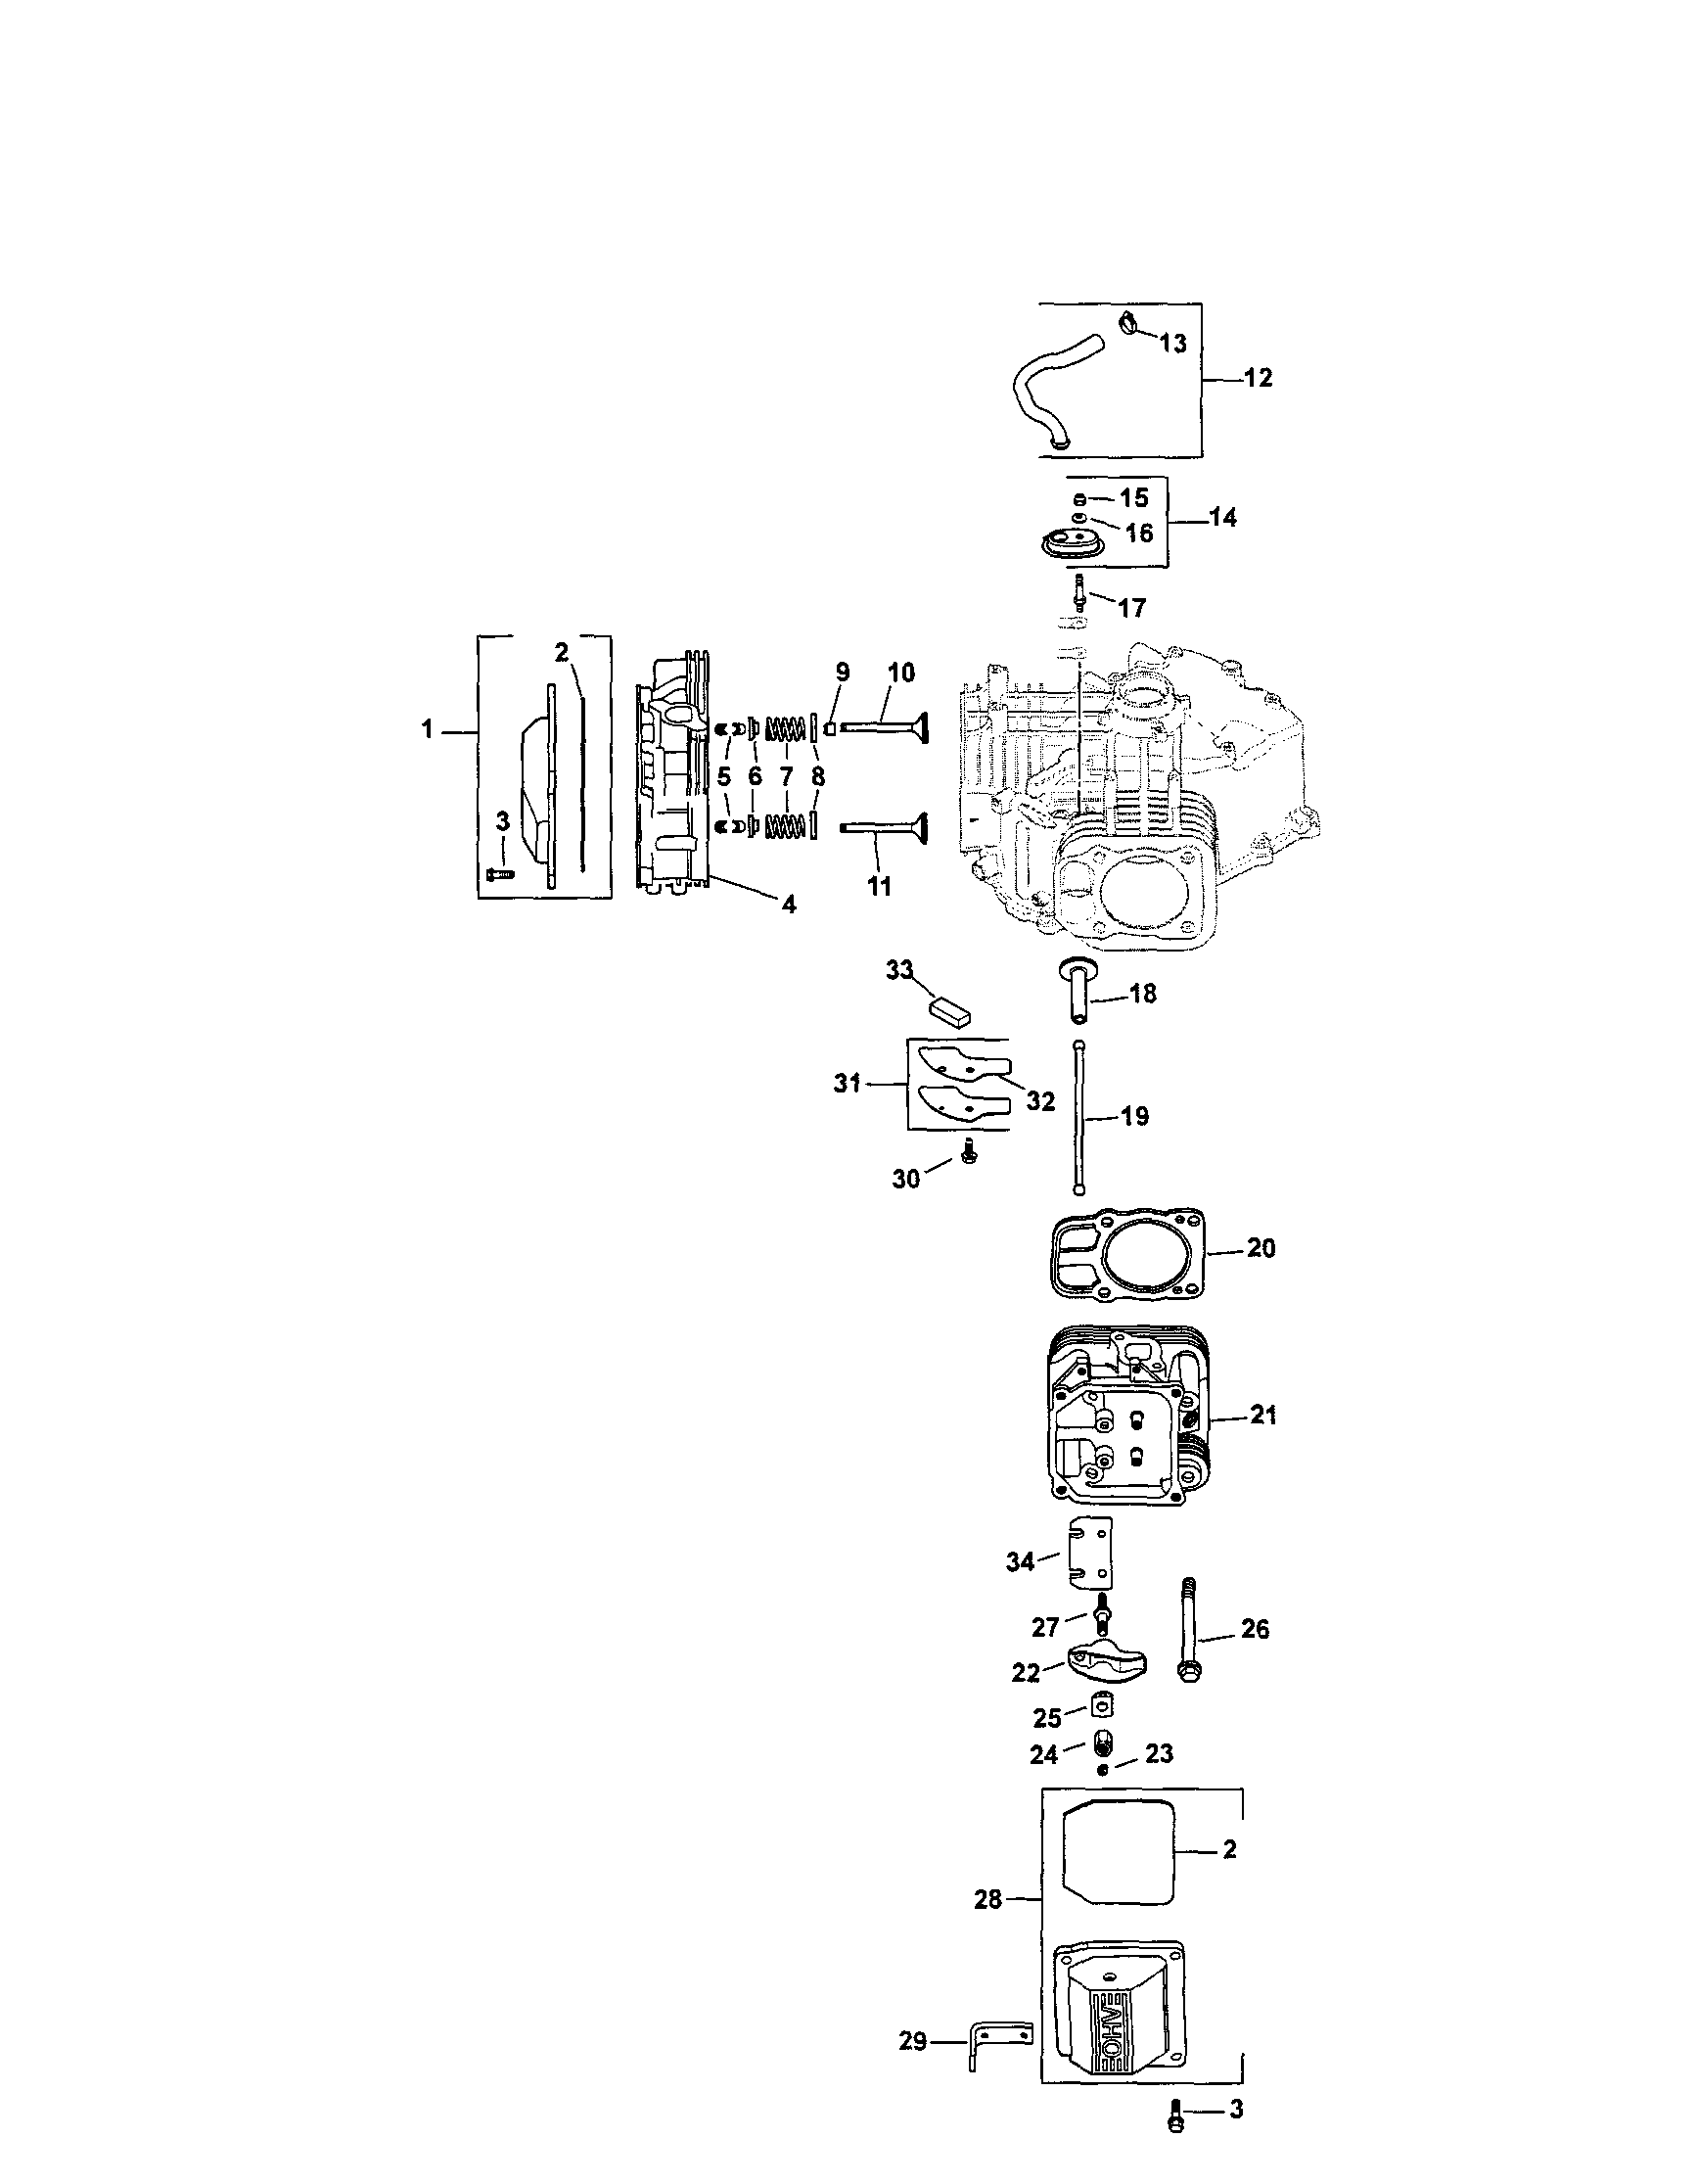 Kohler model SV725-0011 engine genuine parts